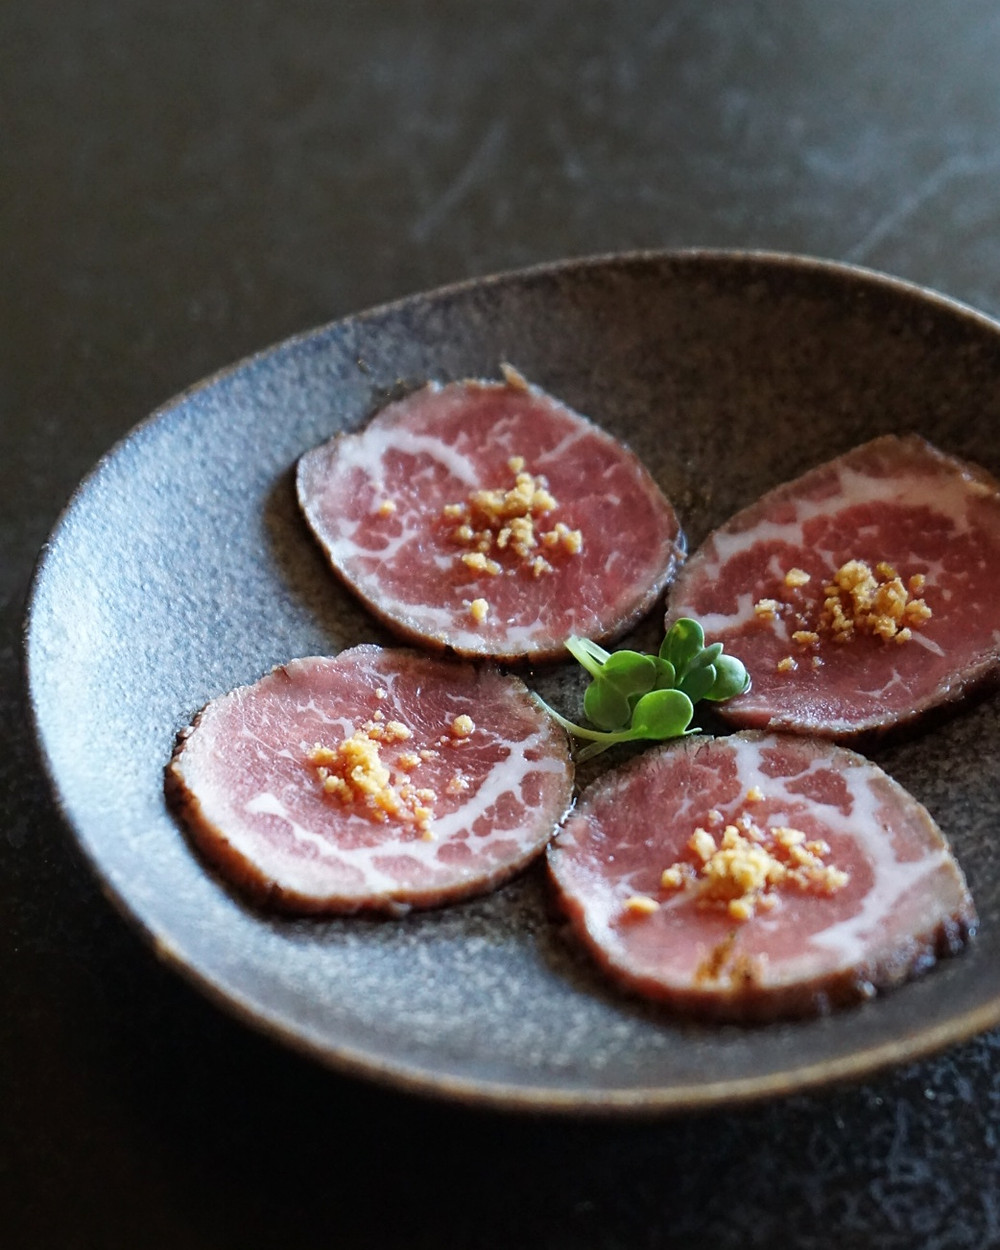 USDA Prime Ribeye Tataki with Ponzu and Japanese Cherry Blossoms.